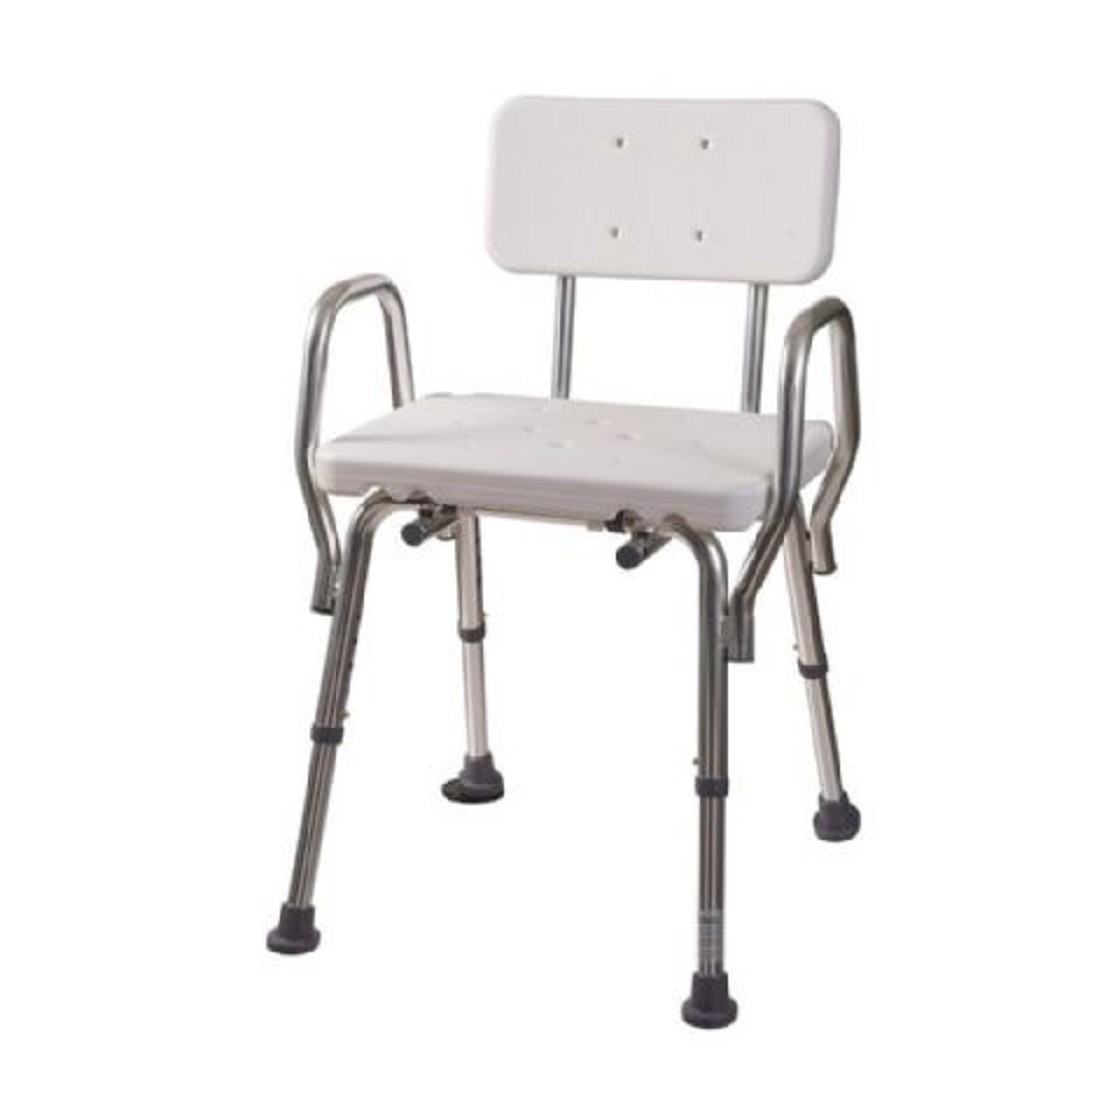 Shower Chair with Backrest - FREE - 58.0KB